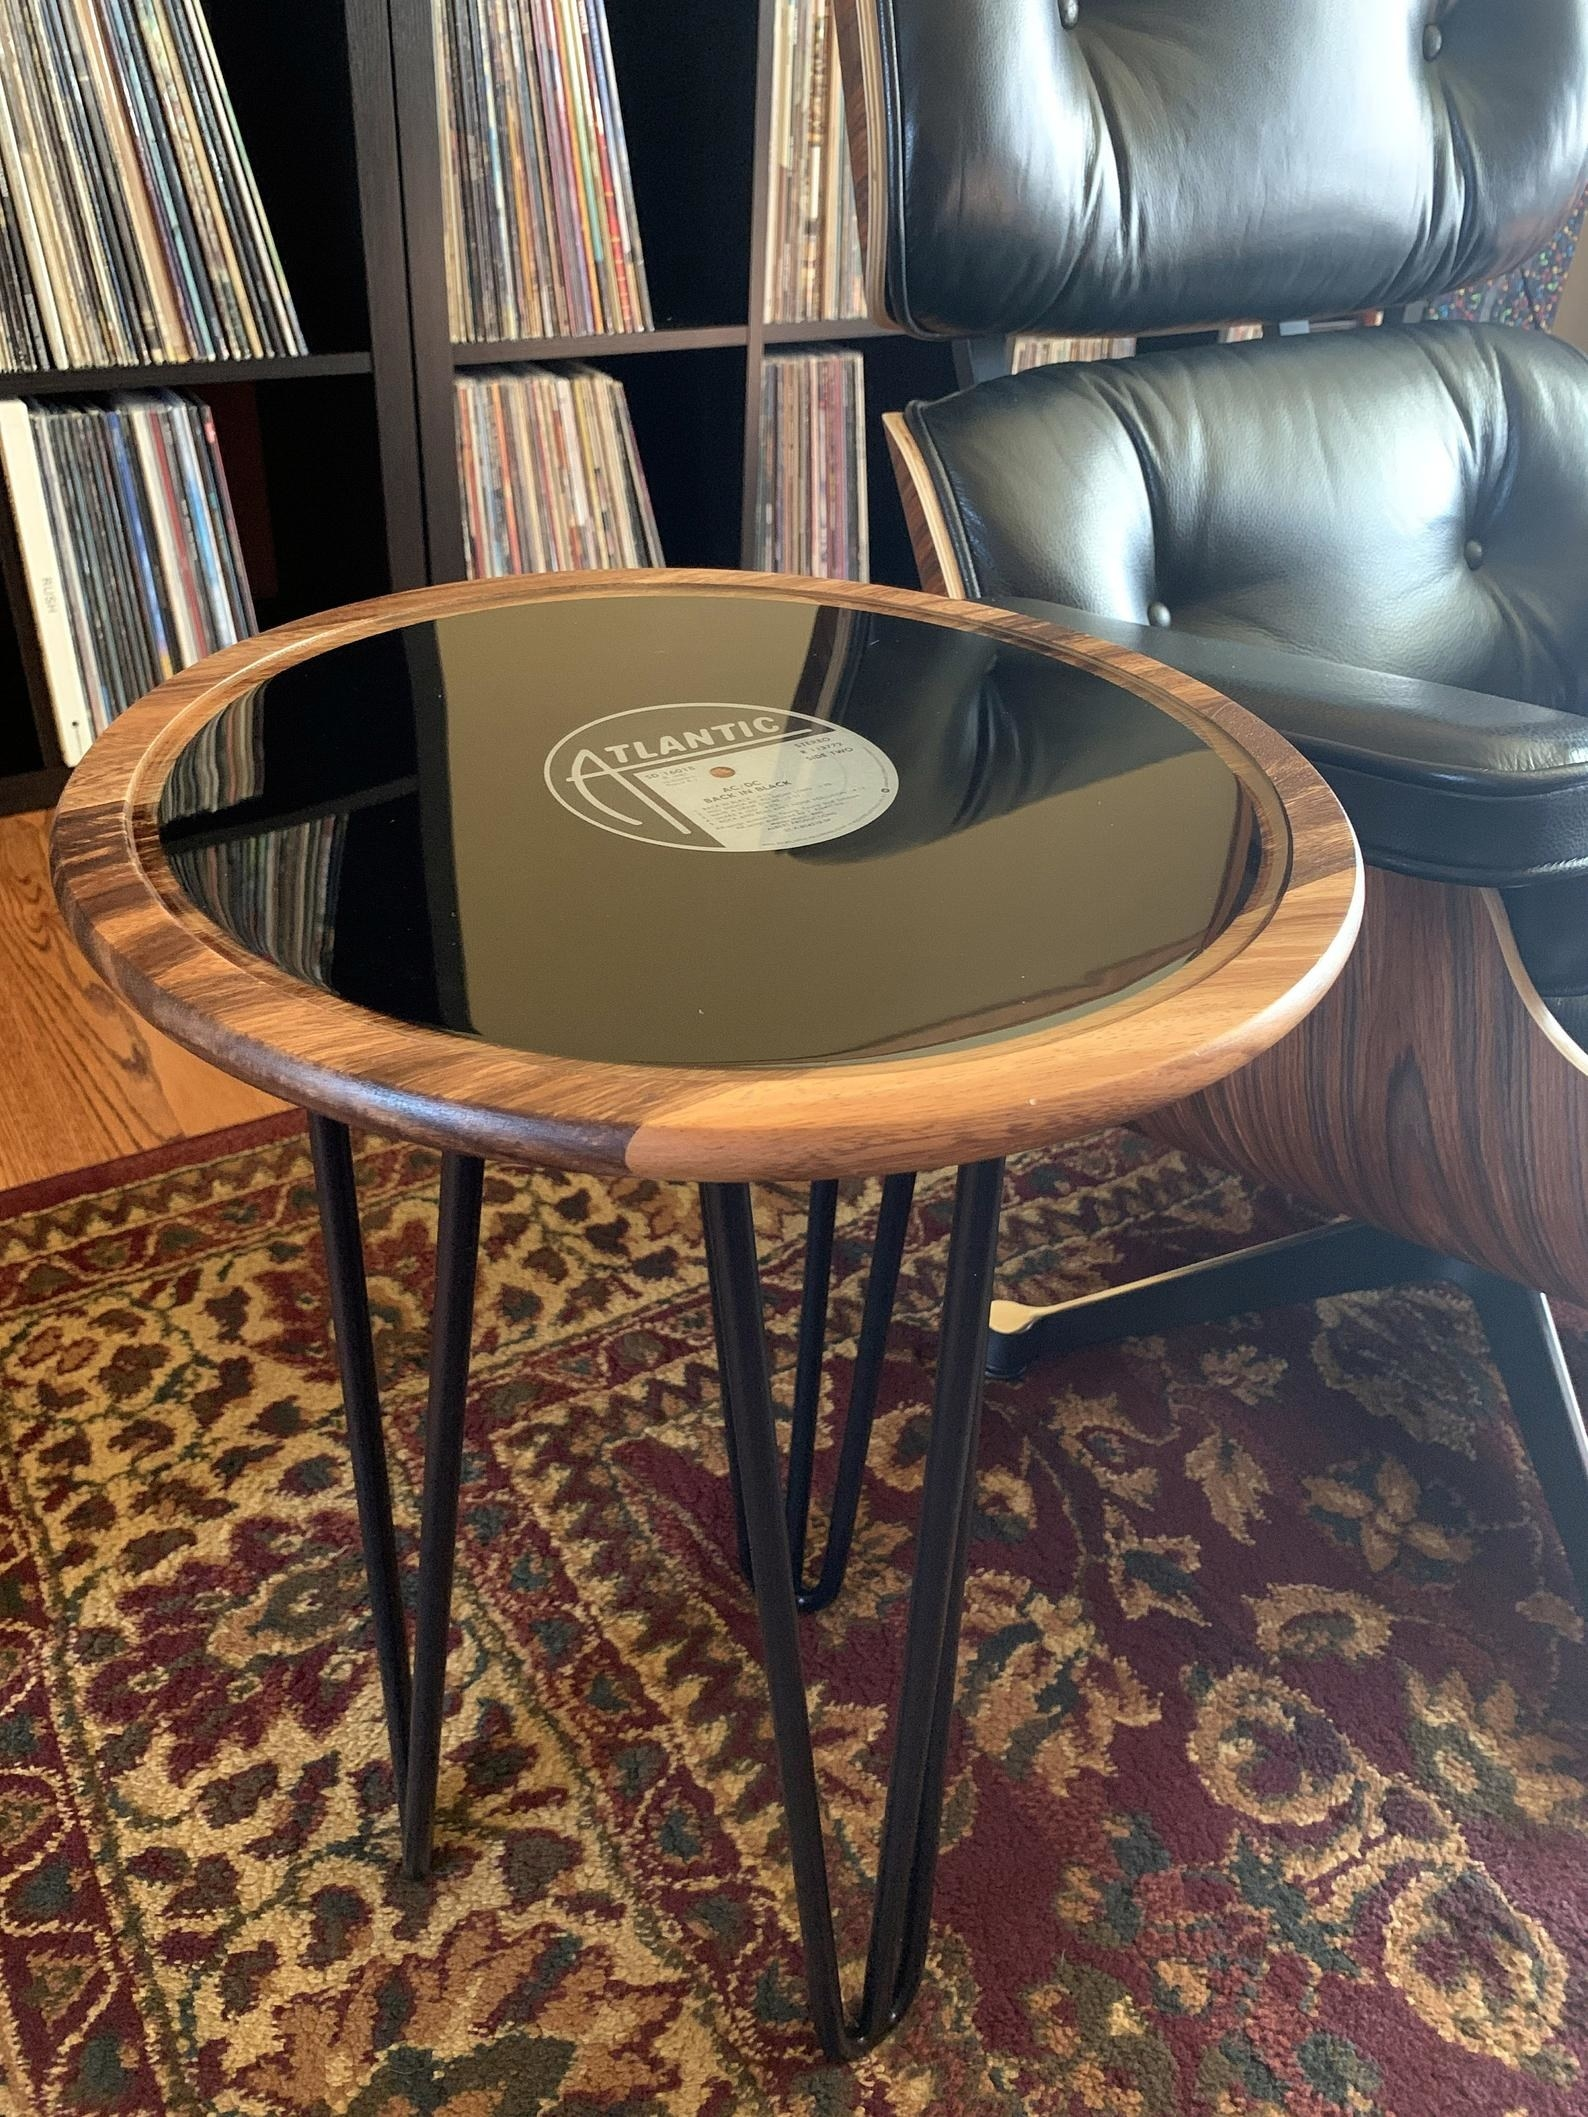 an atlantic record on top of the wooden table with hairpin legs